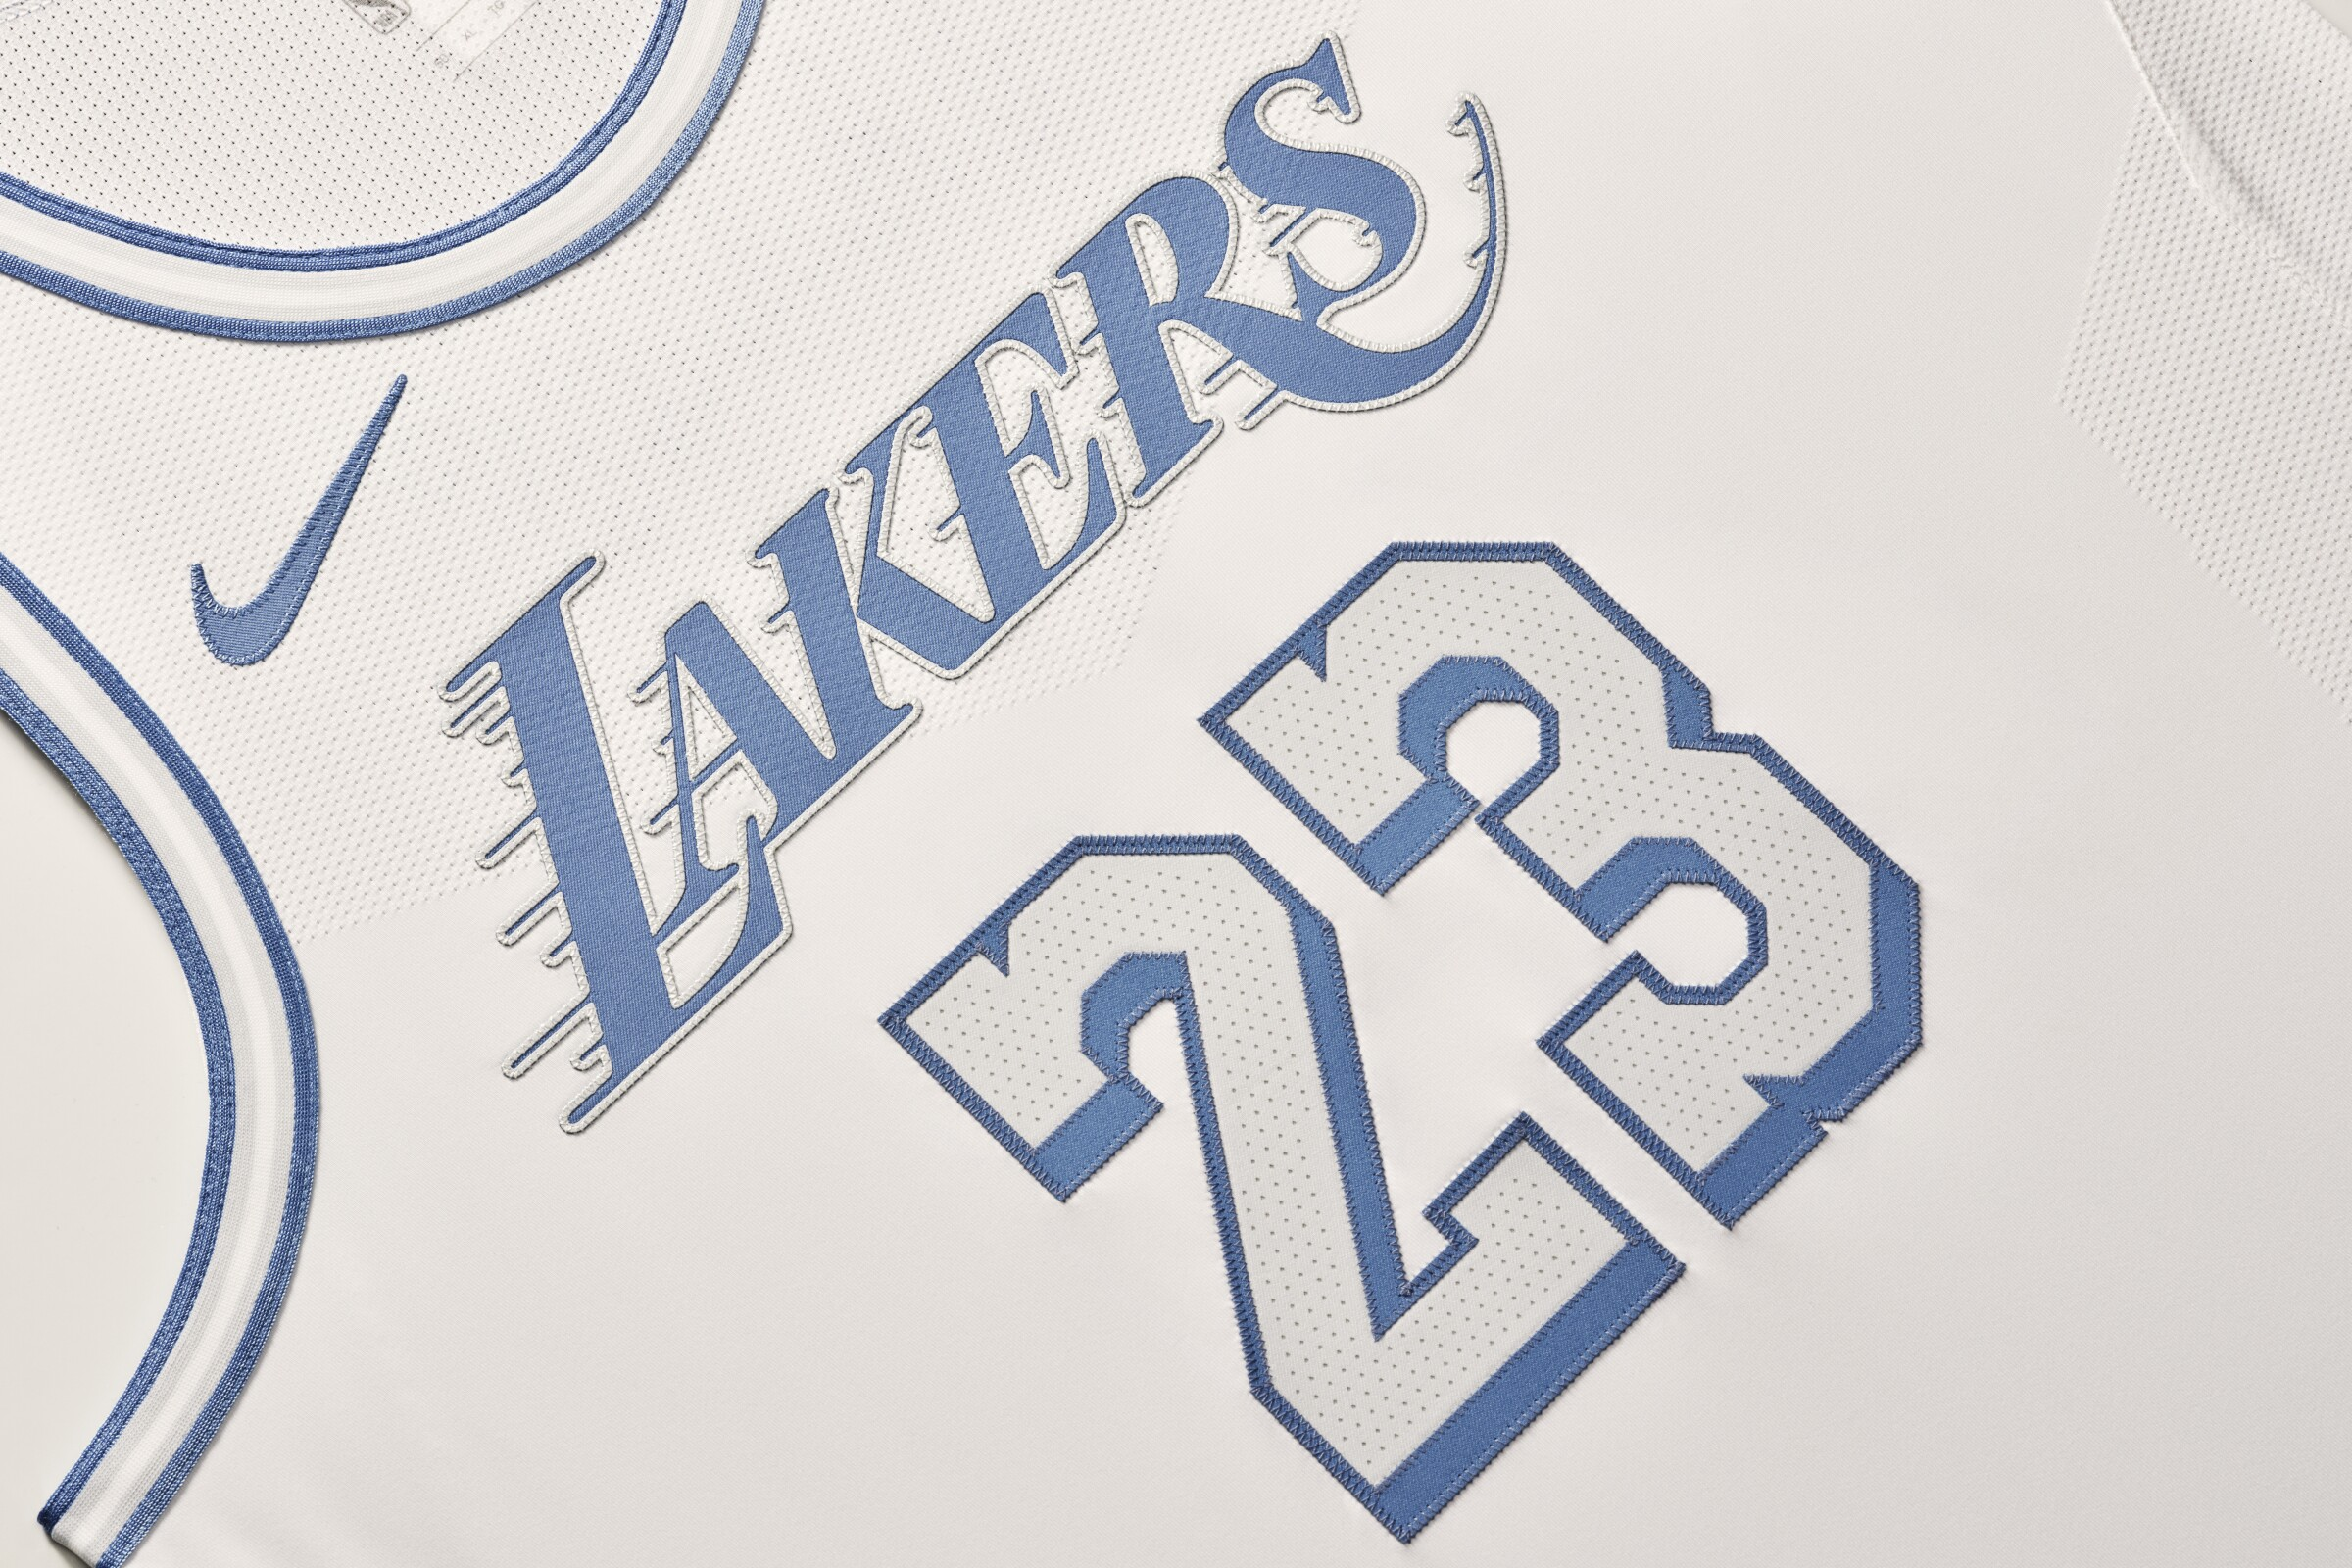 Nba City Edition Jerseys Ranked From Dorkiest To Coolest Los Angeles Times